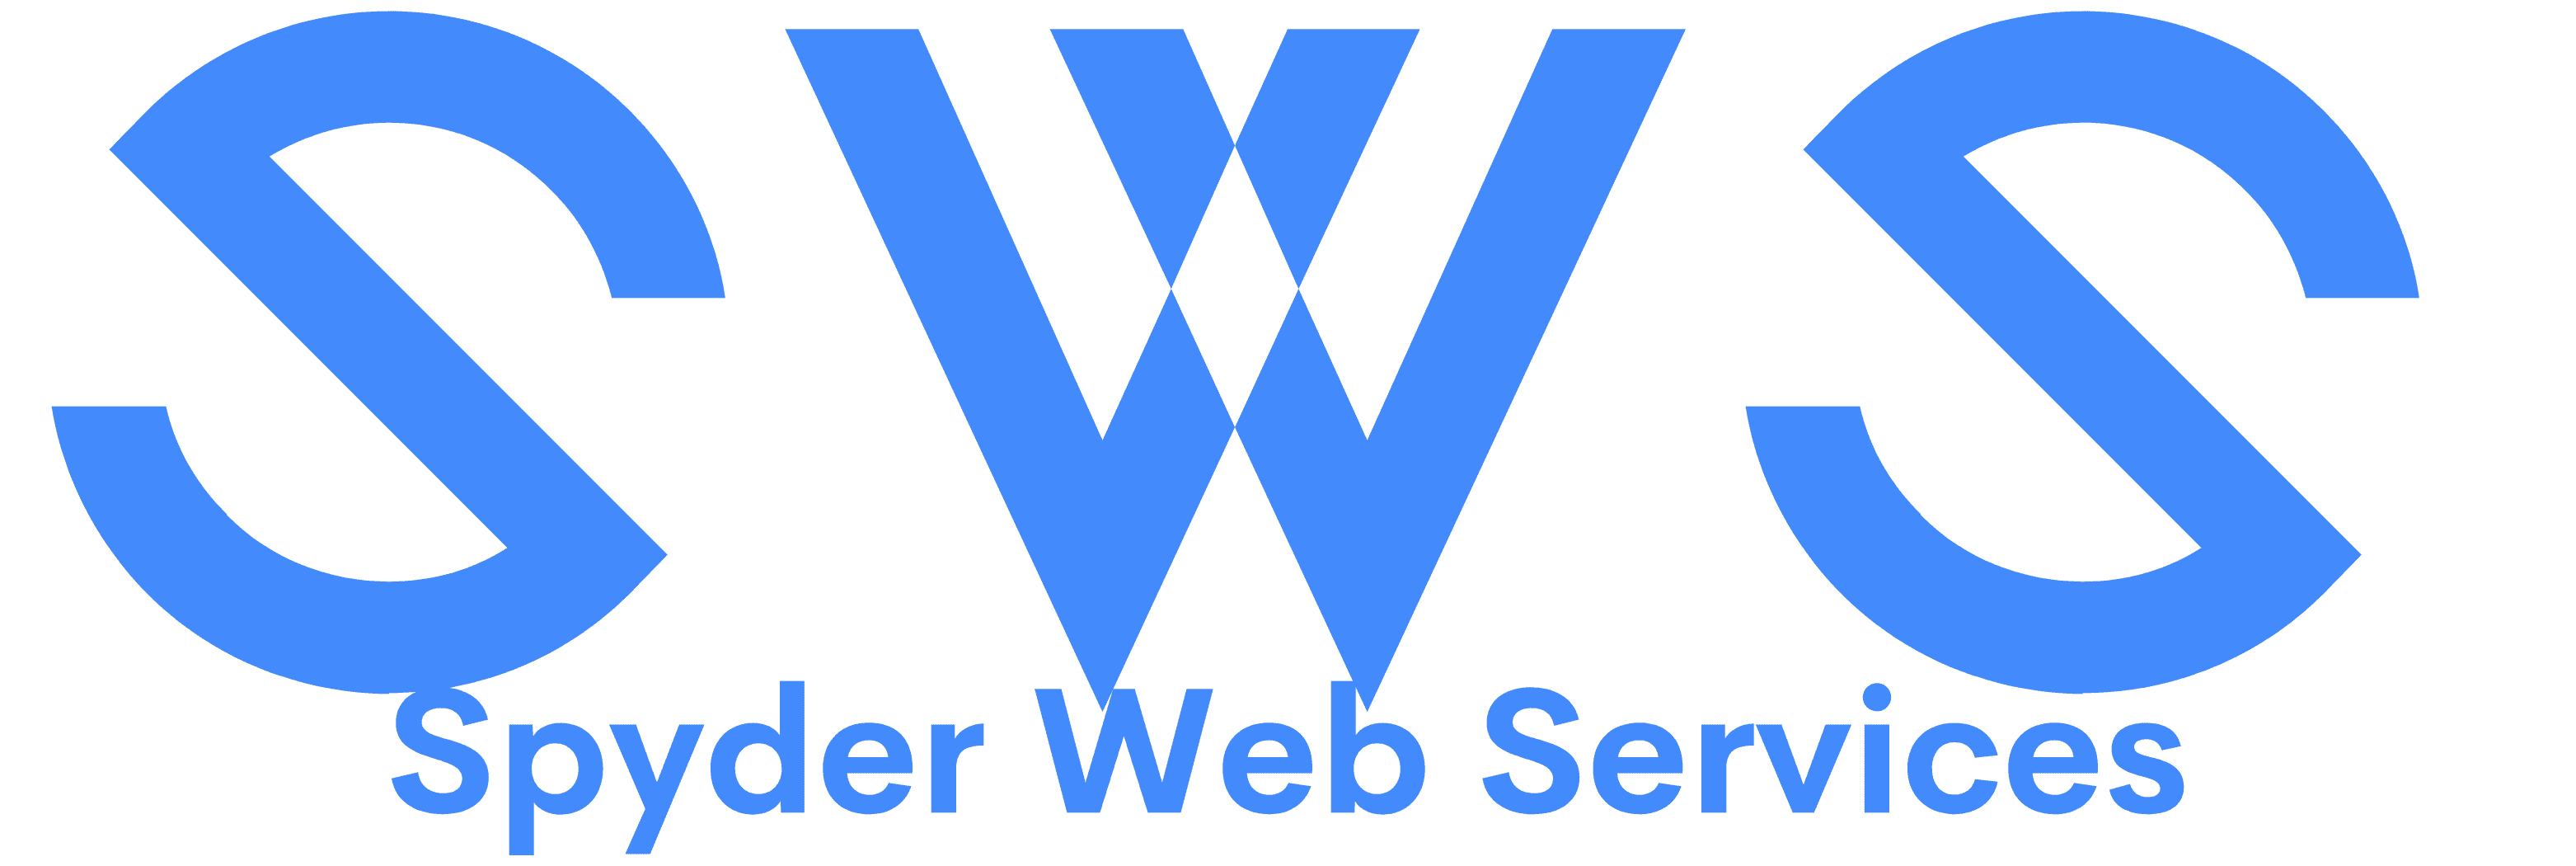 Spyder Web Services